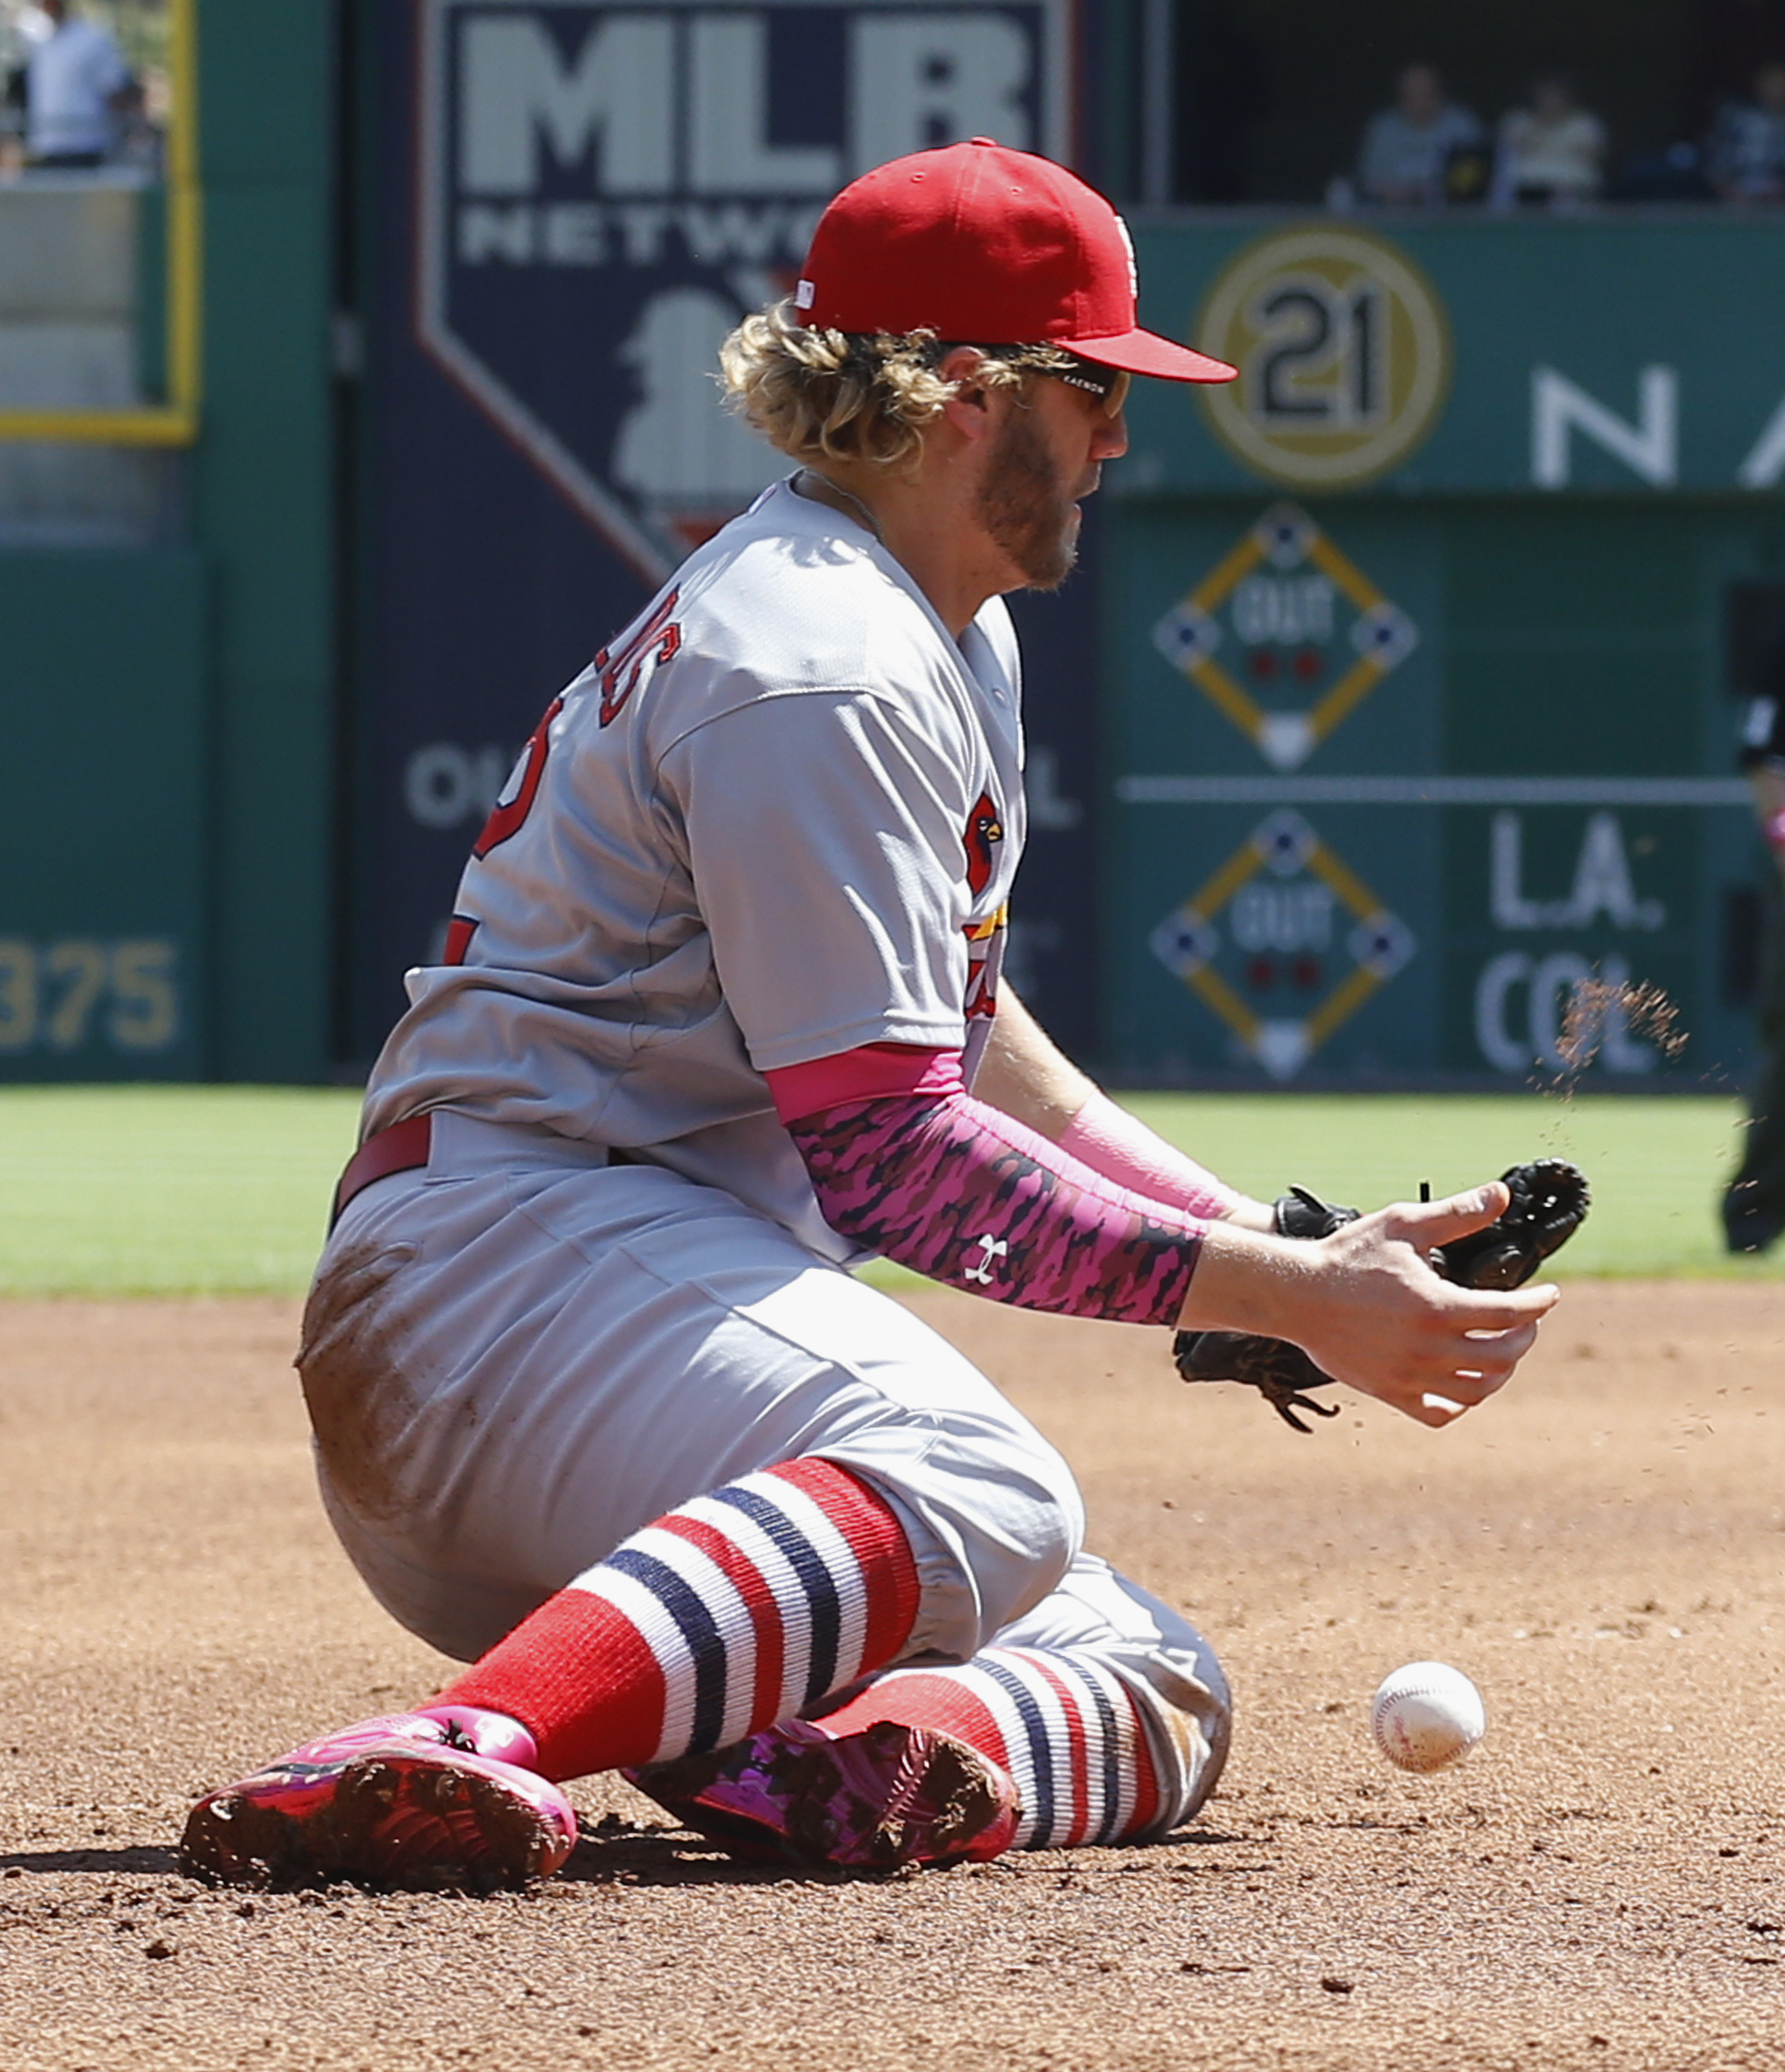 St. Louis Cardinals first baseman Mark Reynolds cannot field a ground ball by Pittsburgh Pirates' Jordy Mercer in the fourth inning of a baseball game, Sunday, May 10, 2015, in Pittsburgh. The play was scored a hit for Mercer and drove in Starling Marte w